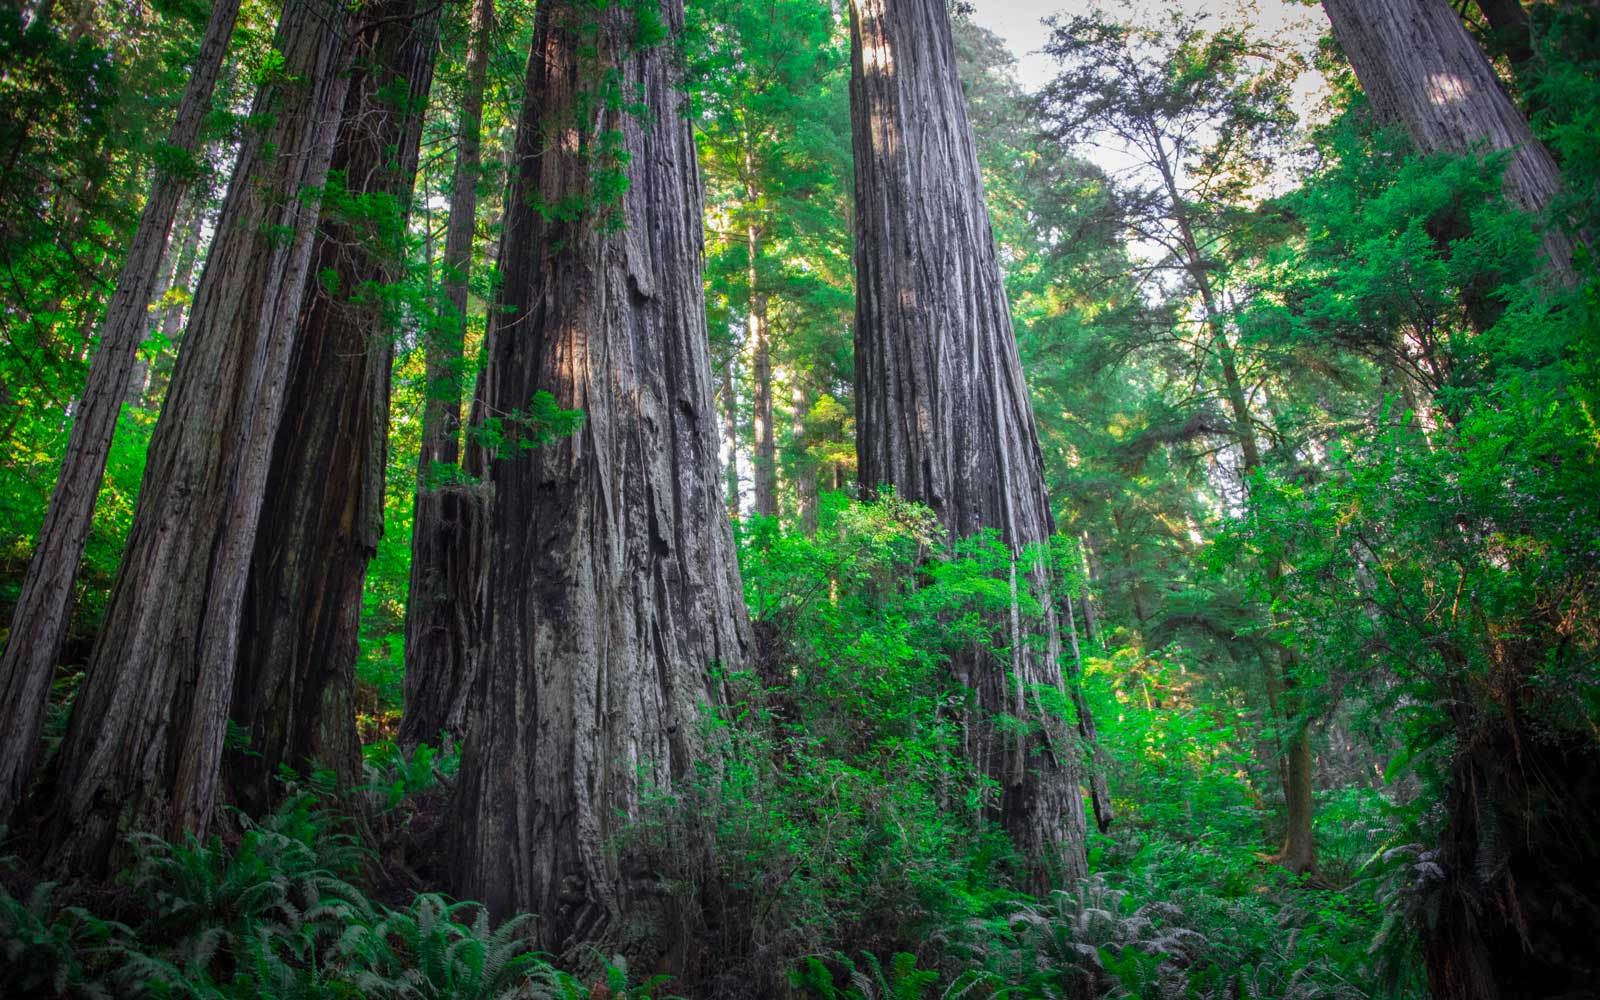 See the world's tallest trees at Redwood National Park.